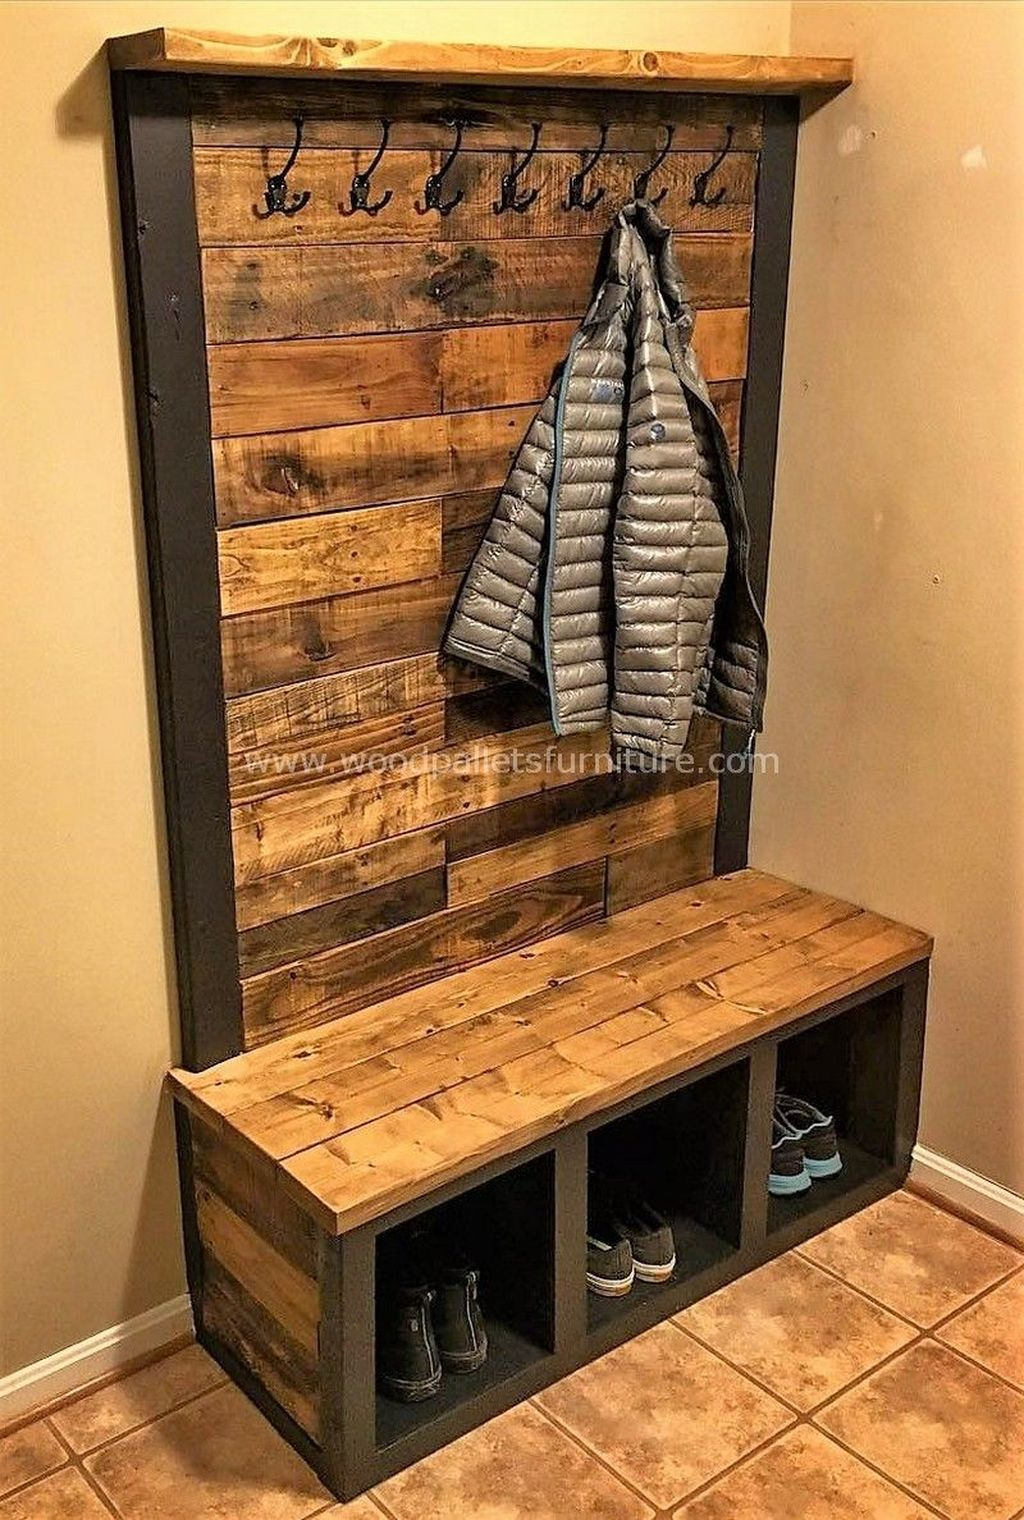 Pin By Trend4homy On Furniture Ideas In 2019 Diy Pallet